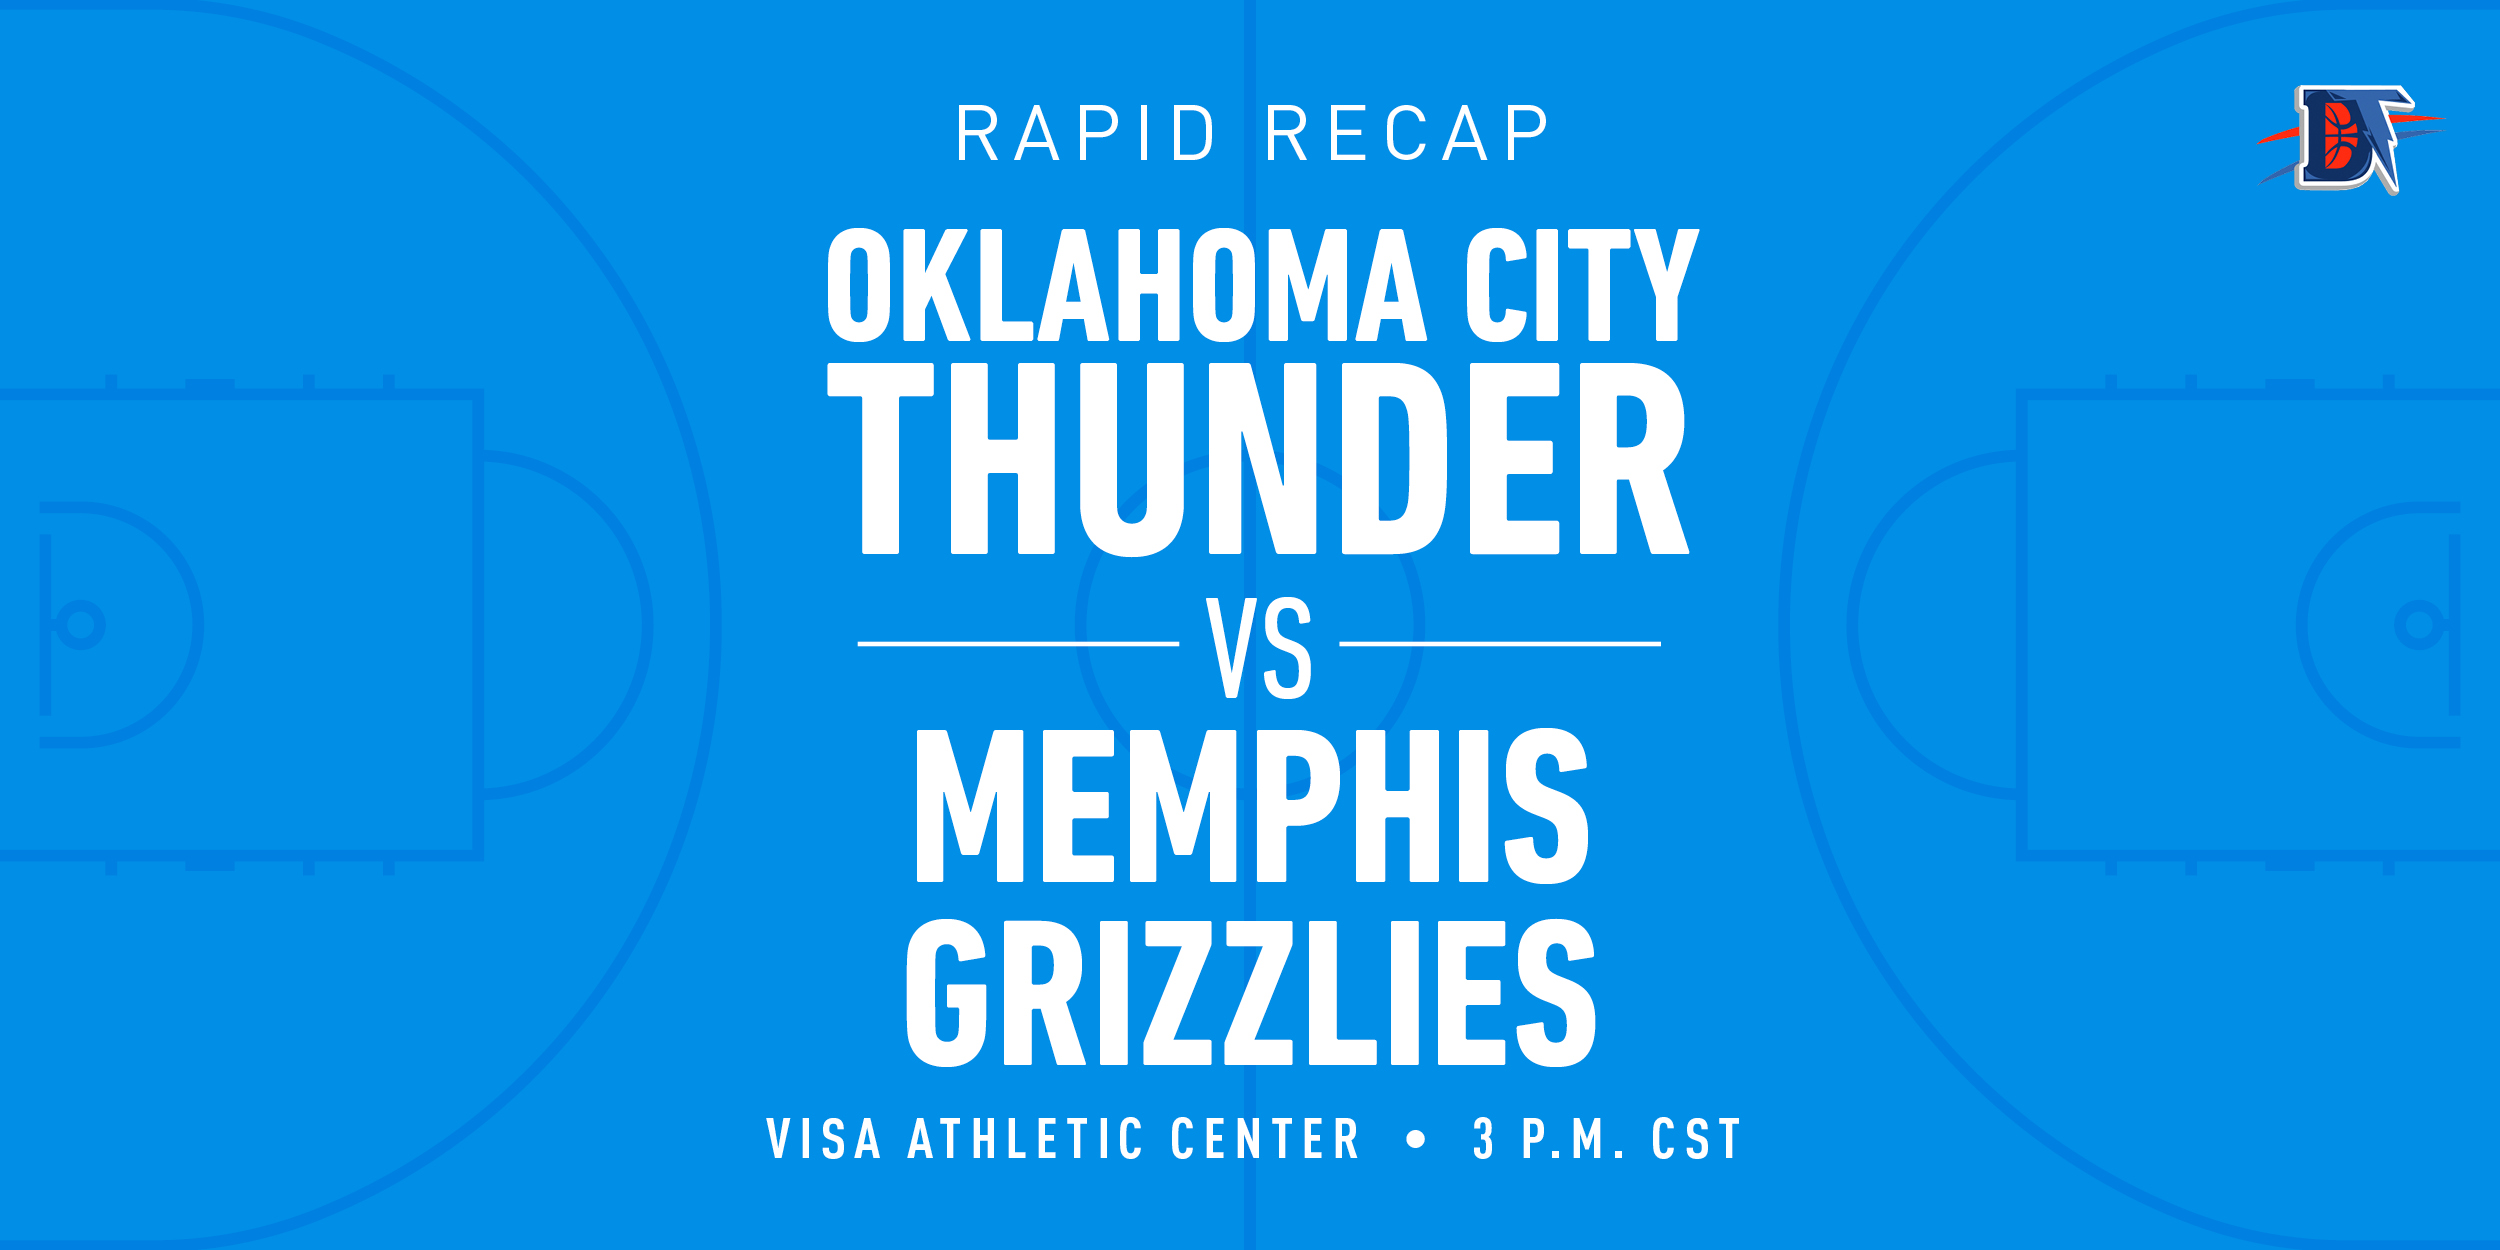 Game 68 Rapid Recap: Grizzlies (33-37) def. Thunder (42-26) 121-92